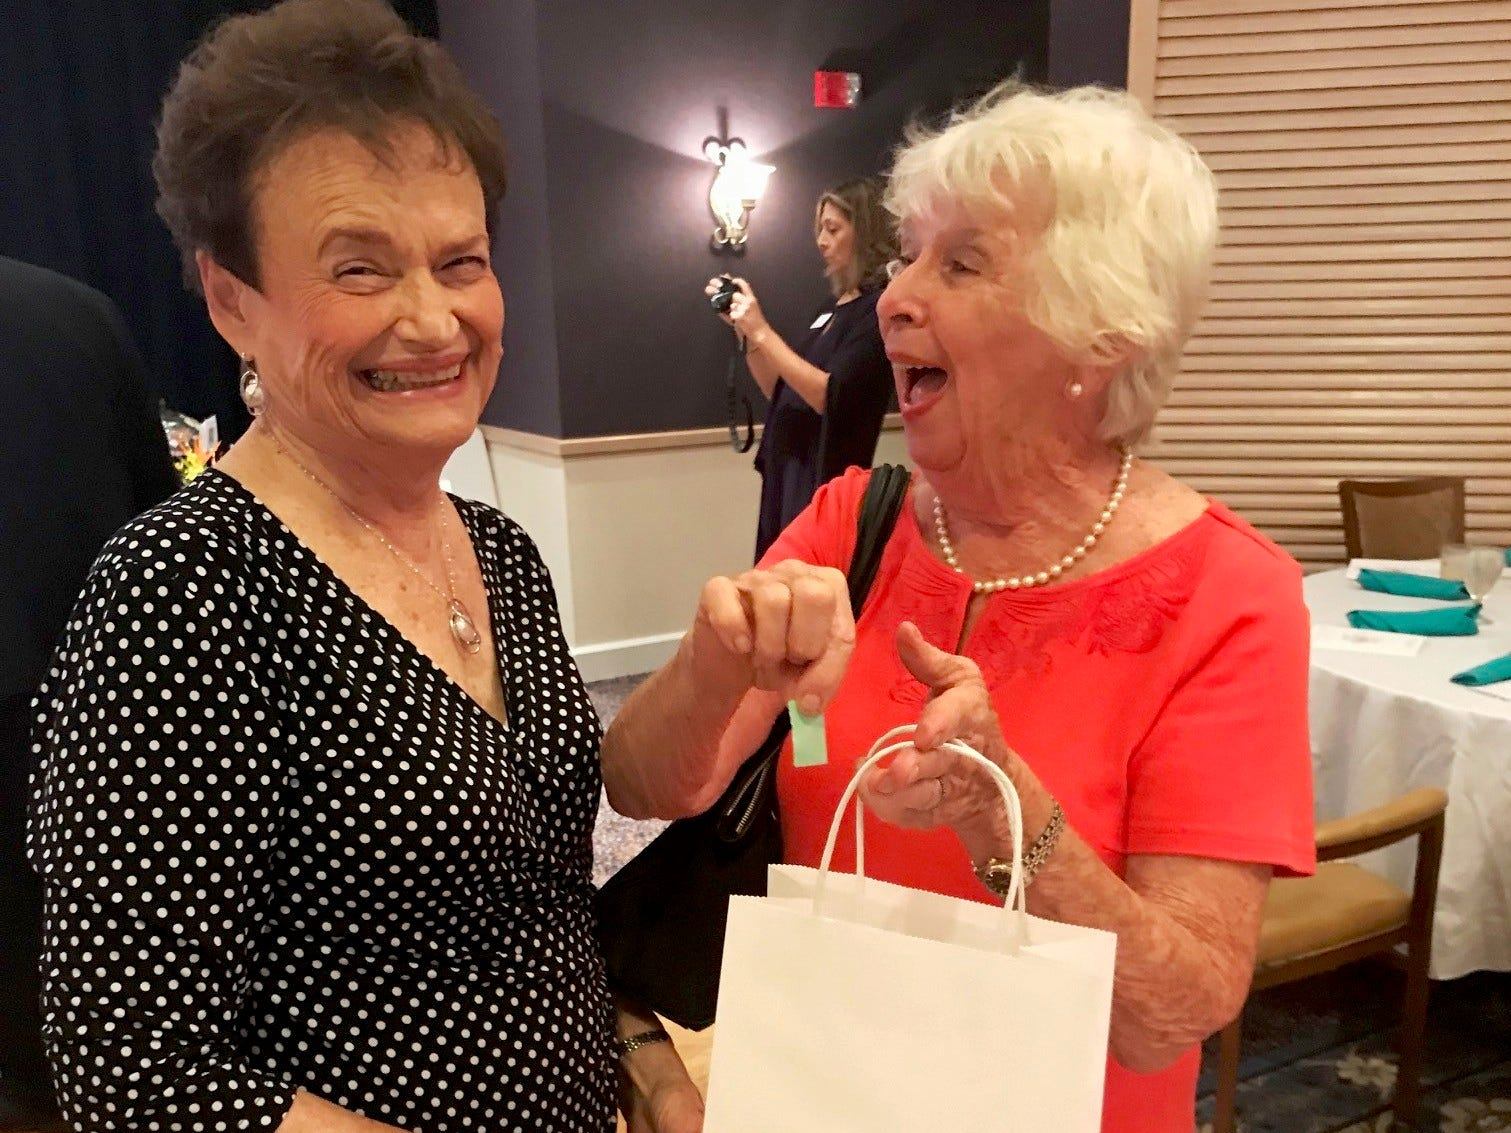 Jan Stoorza, left, and Erne Fridele share a laugh at the Kick-off Gala for Garden Club of Stuart's Secret Gardens Tour.